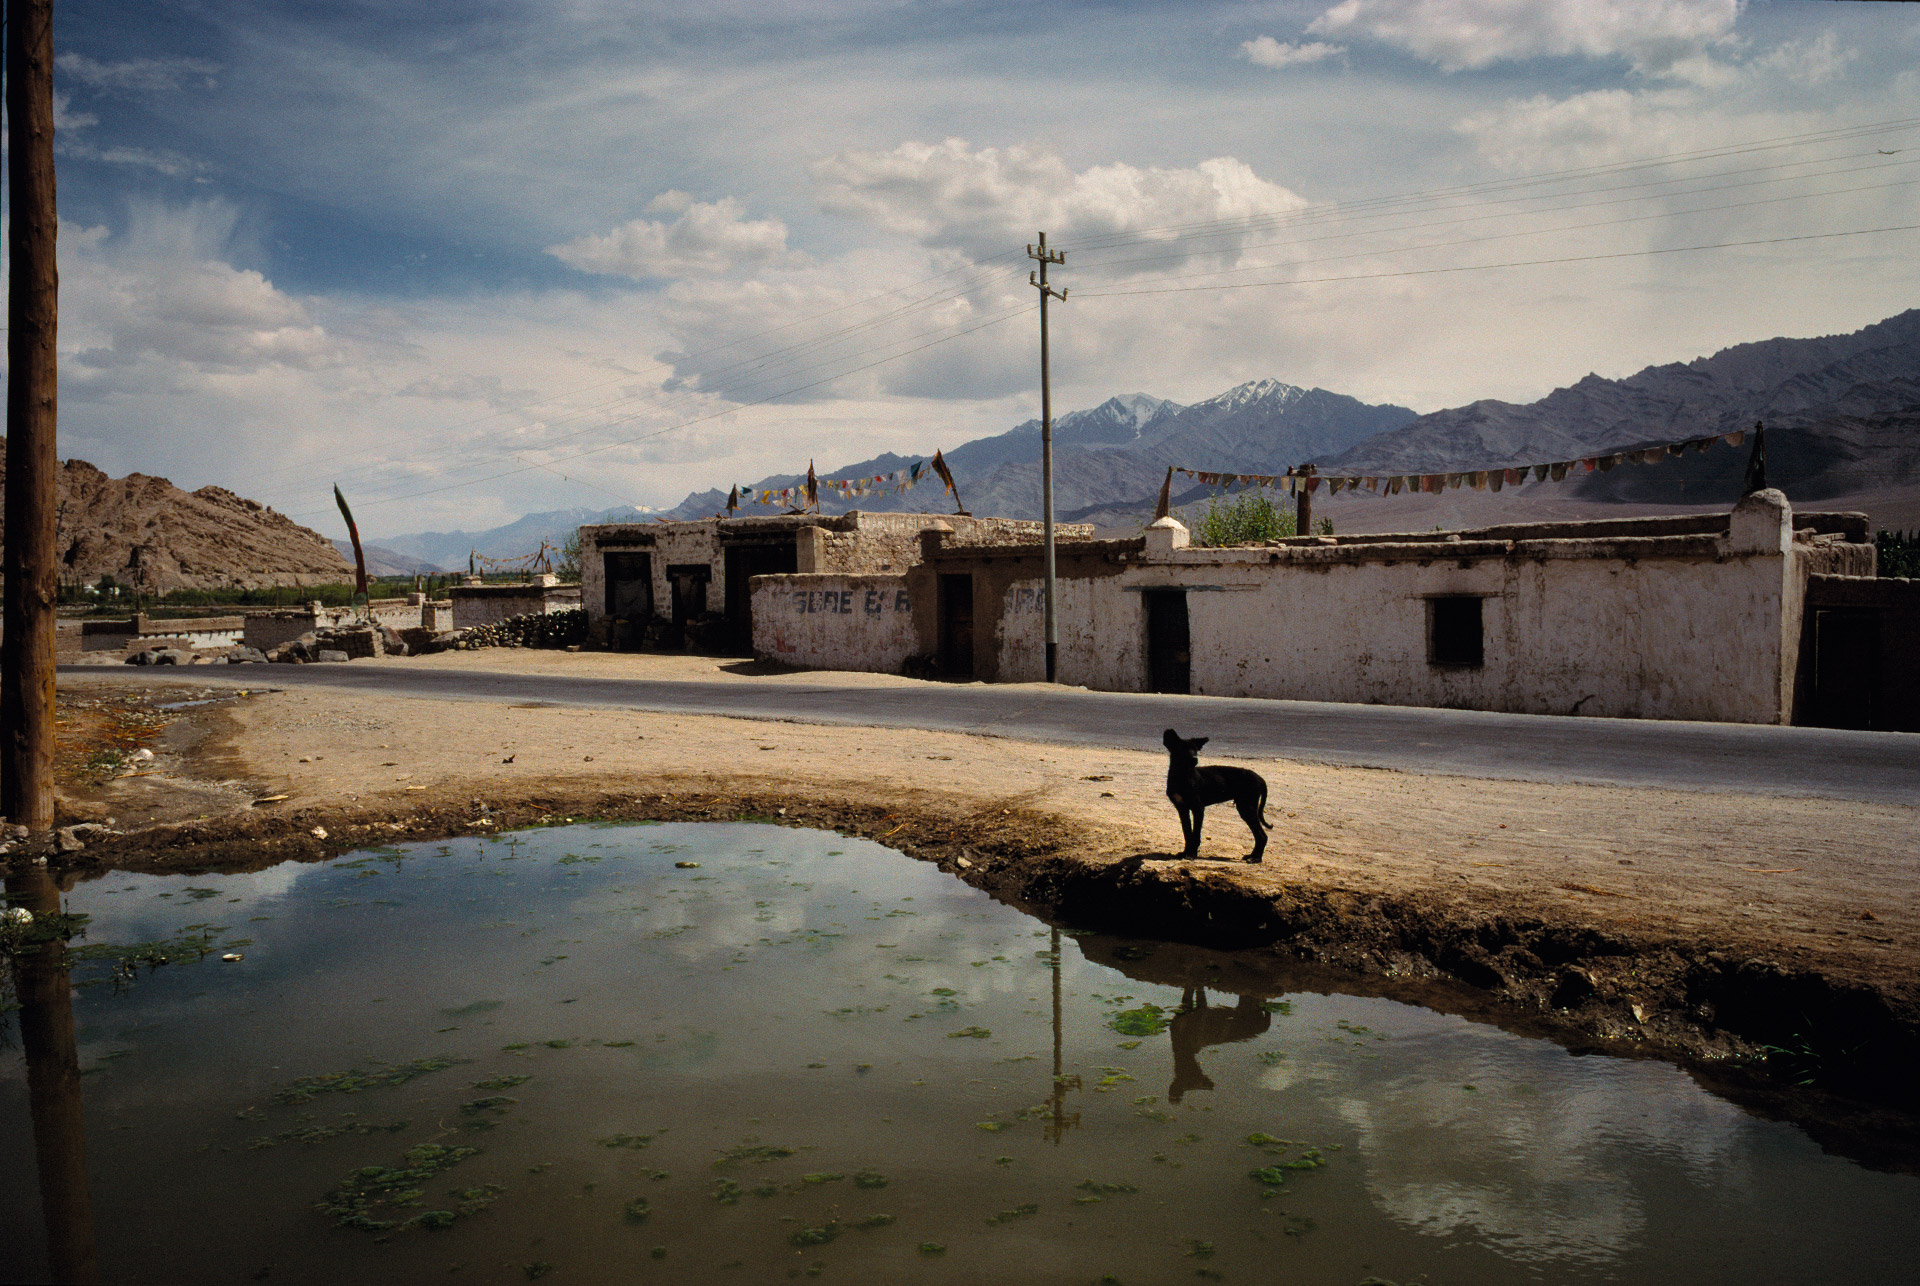 A dog in the street of aq small village in Ladakh near Thiksey Monastery